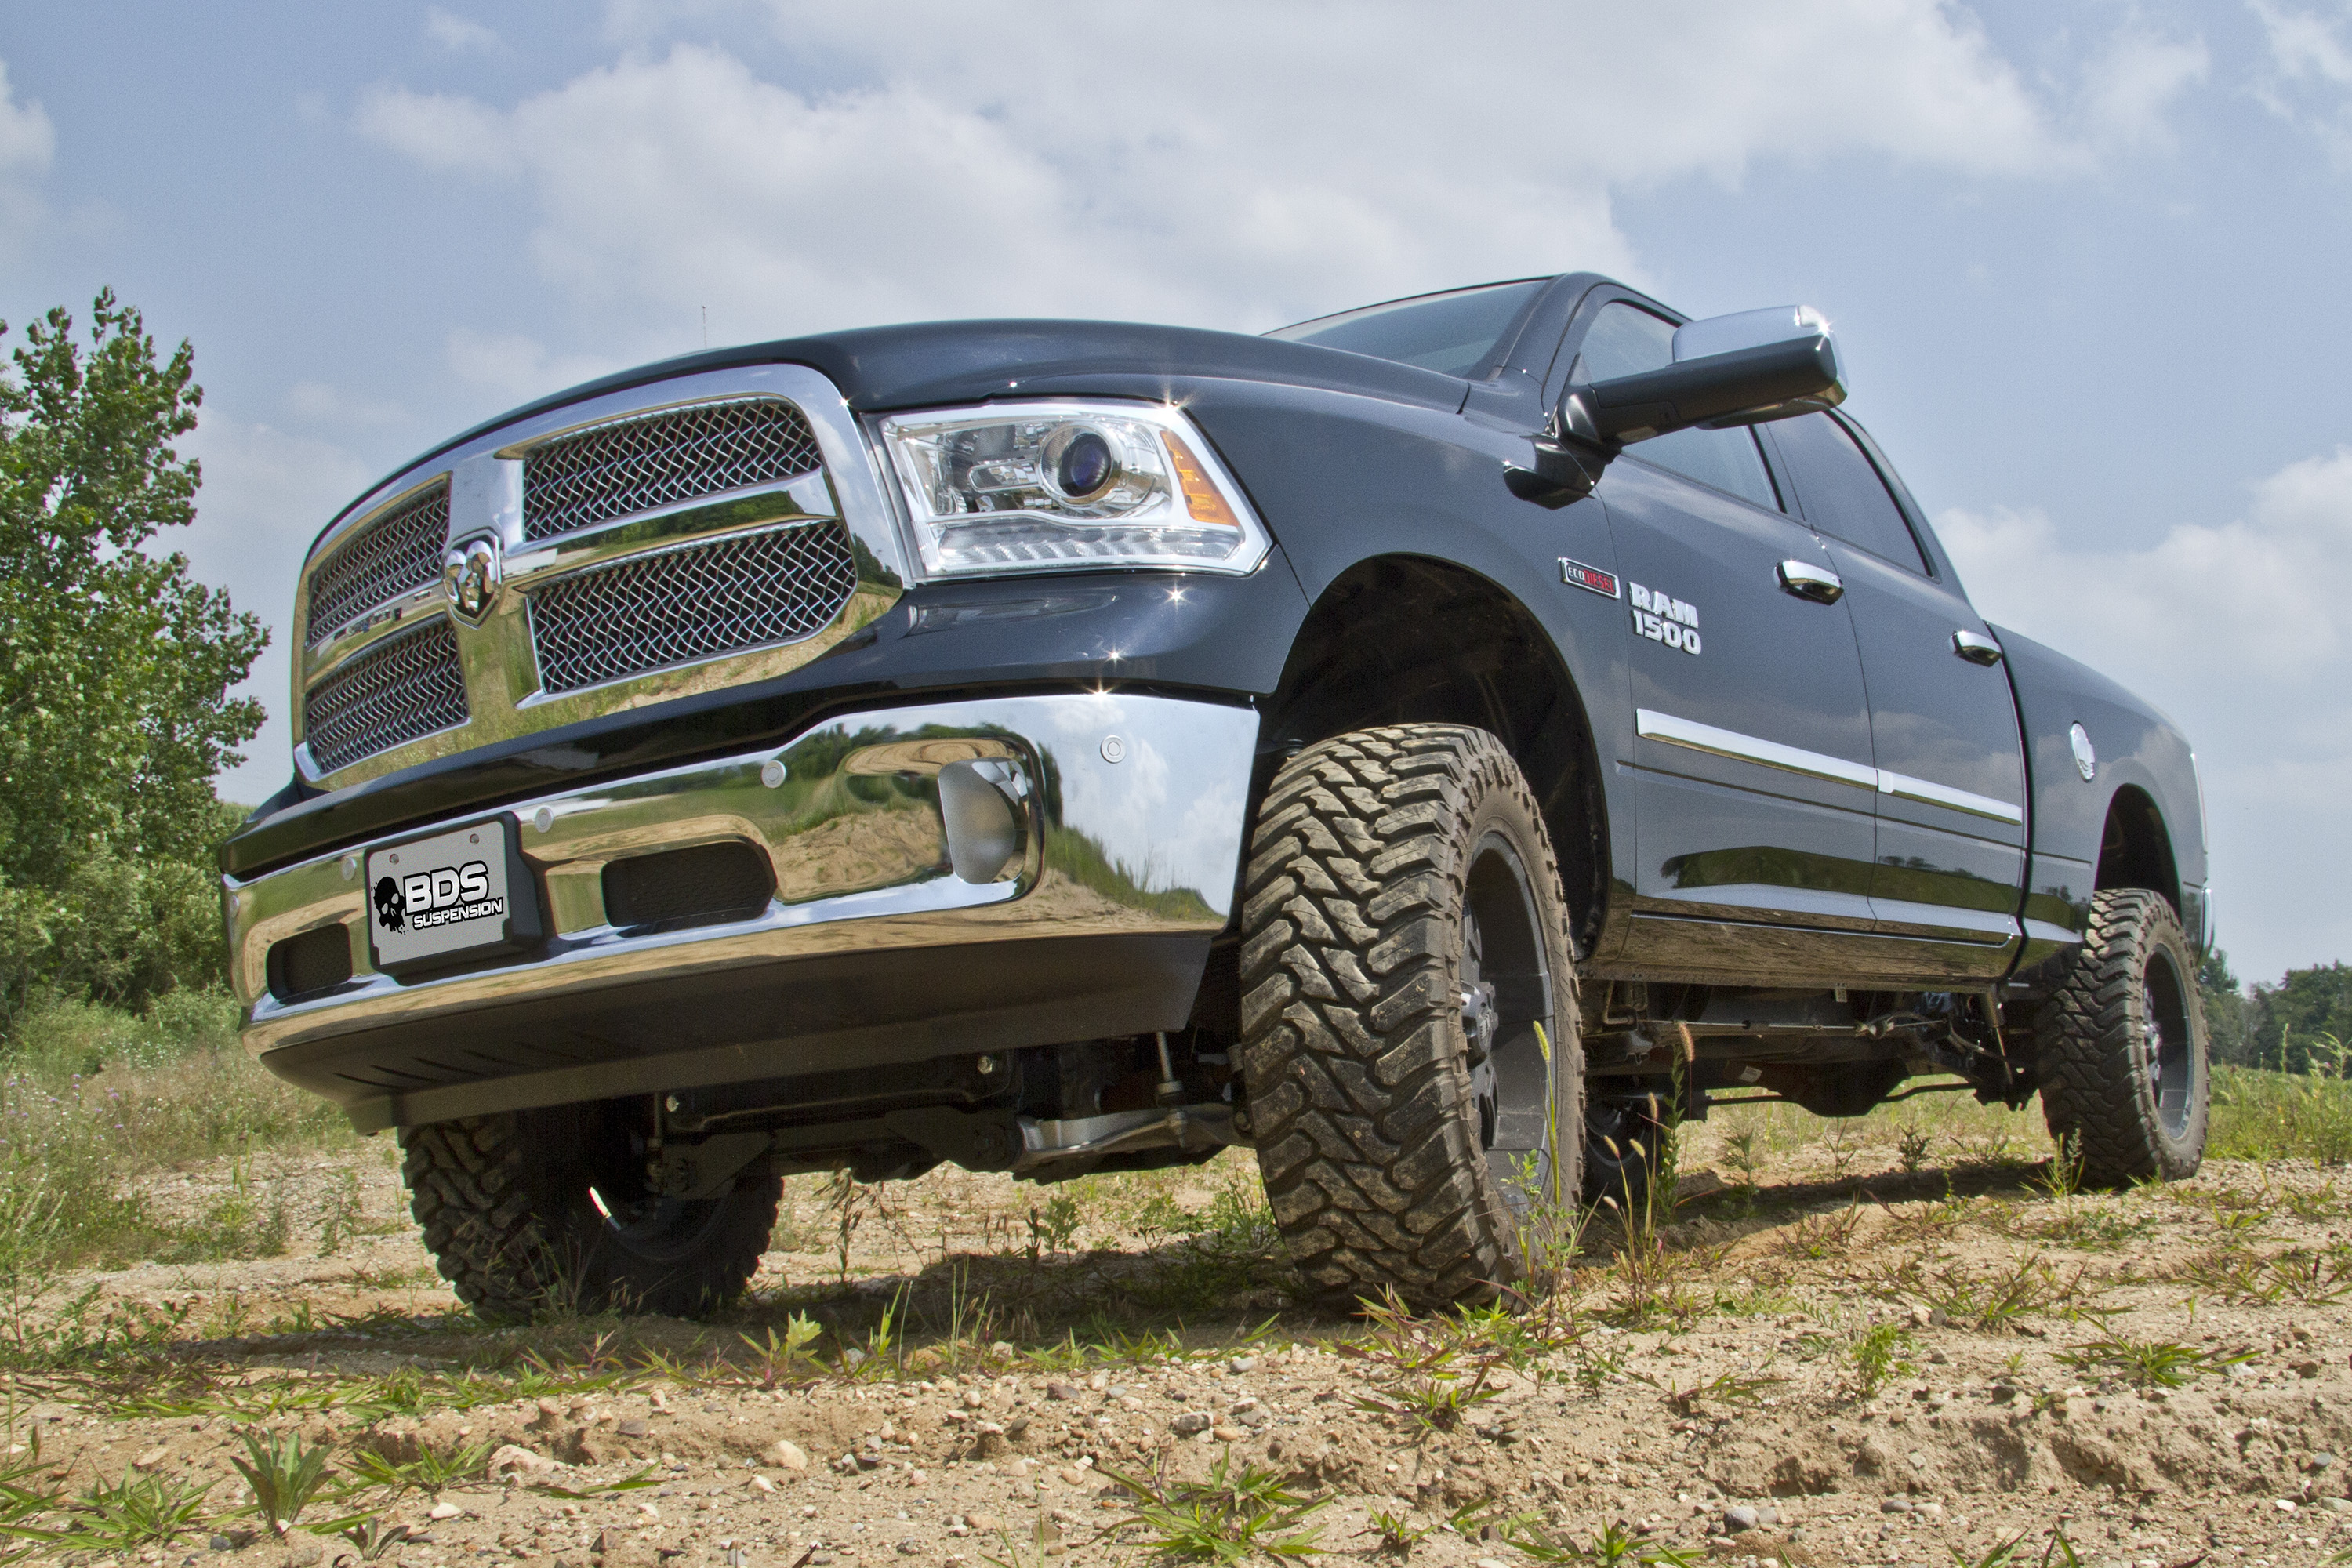 2014 dodge ram 1500 - Dodge Ram 2014 Lifted